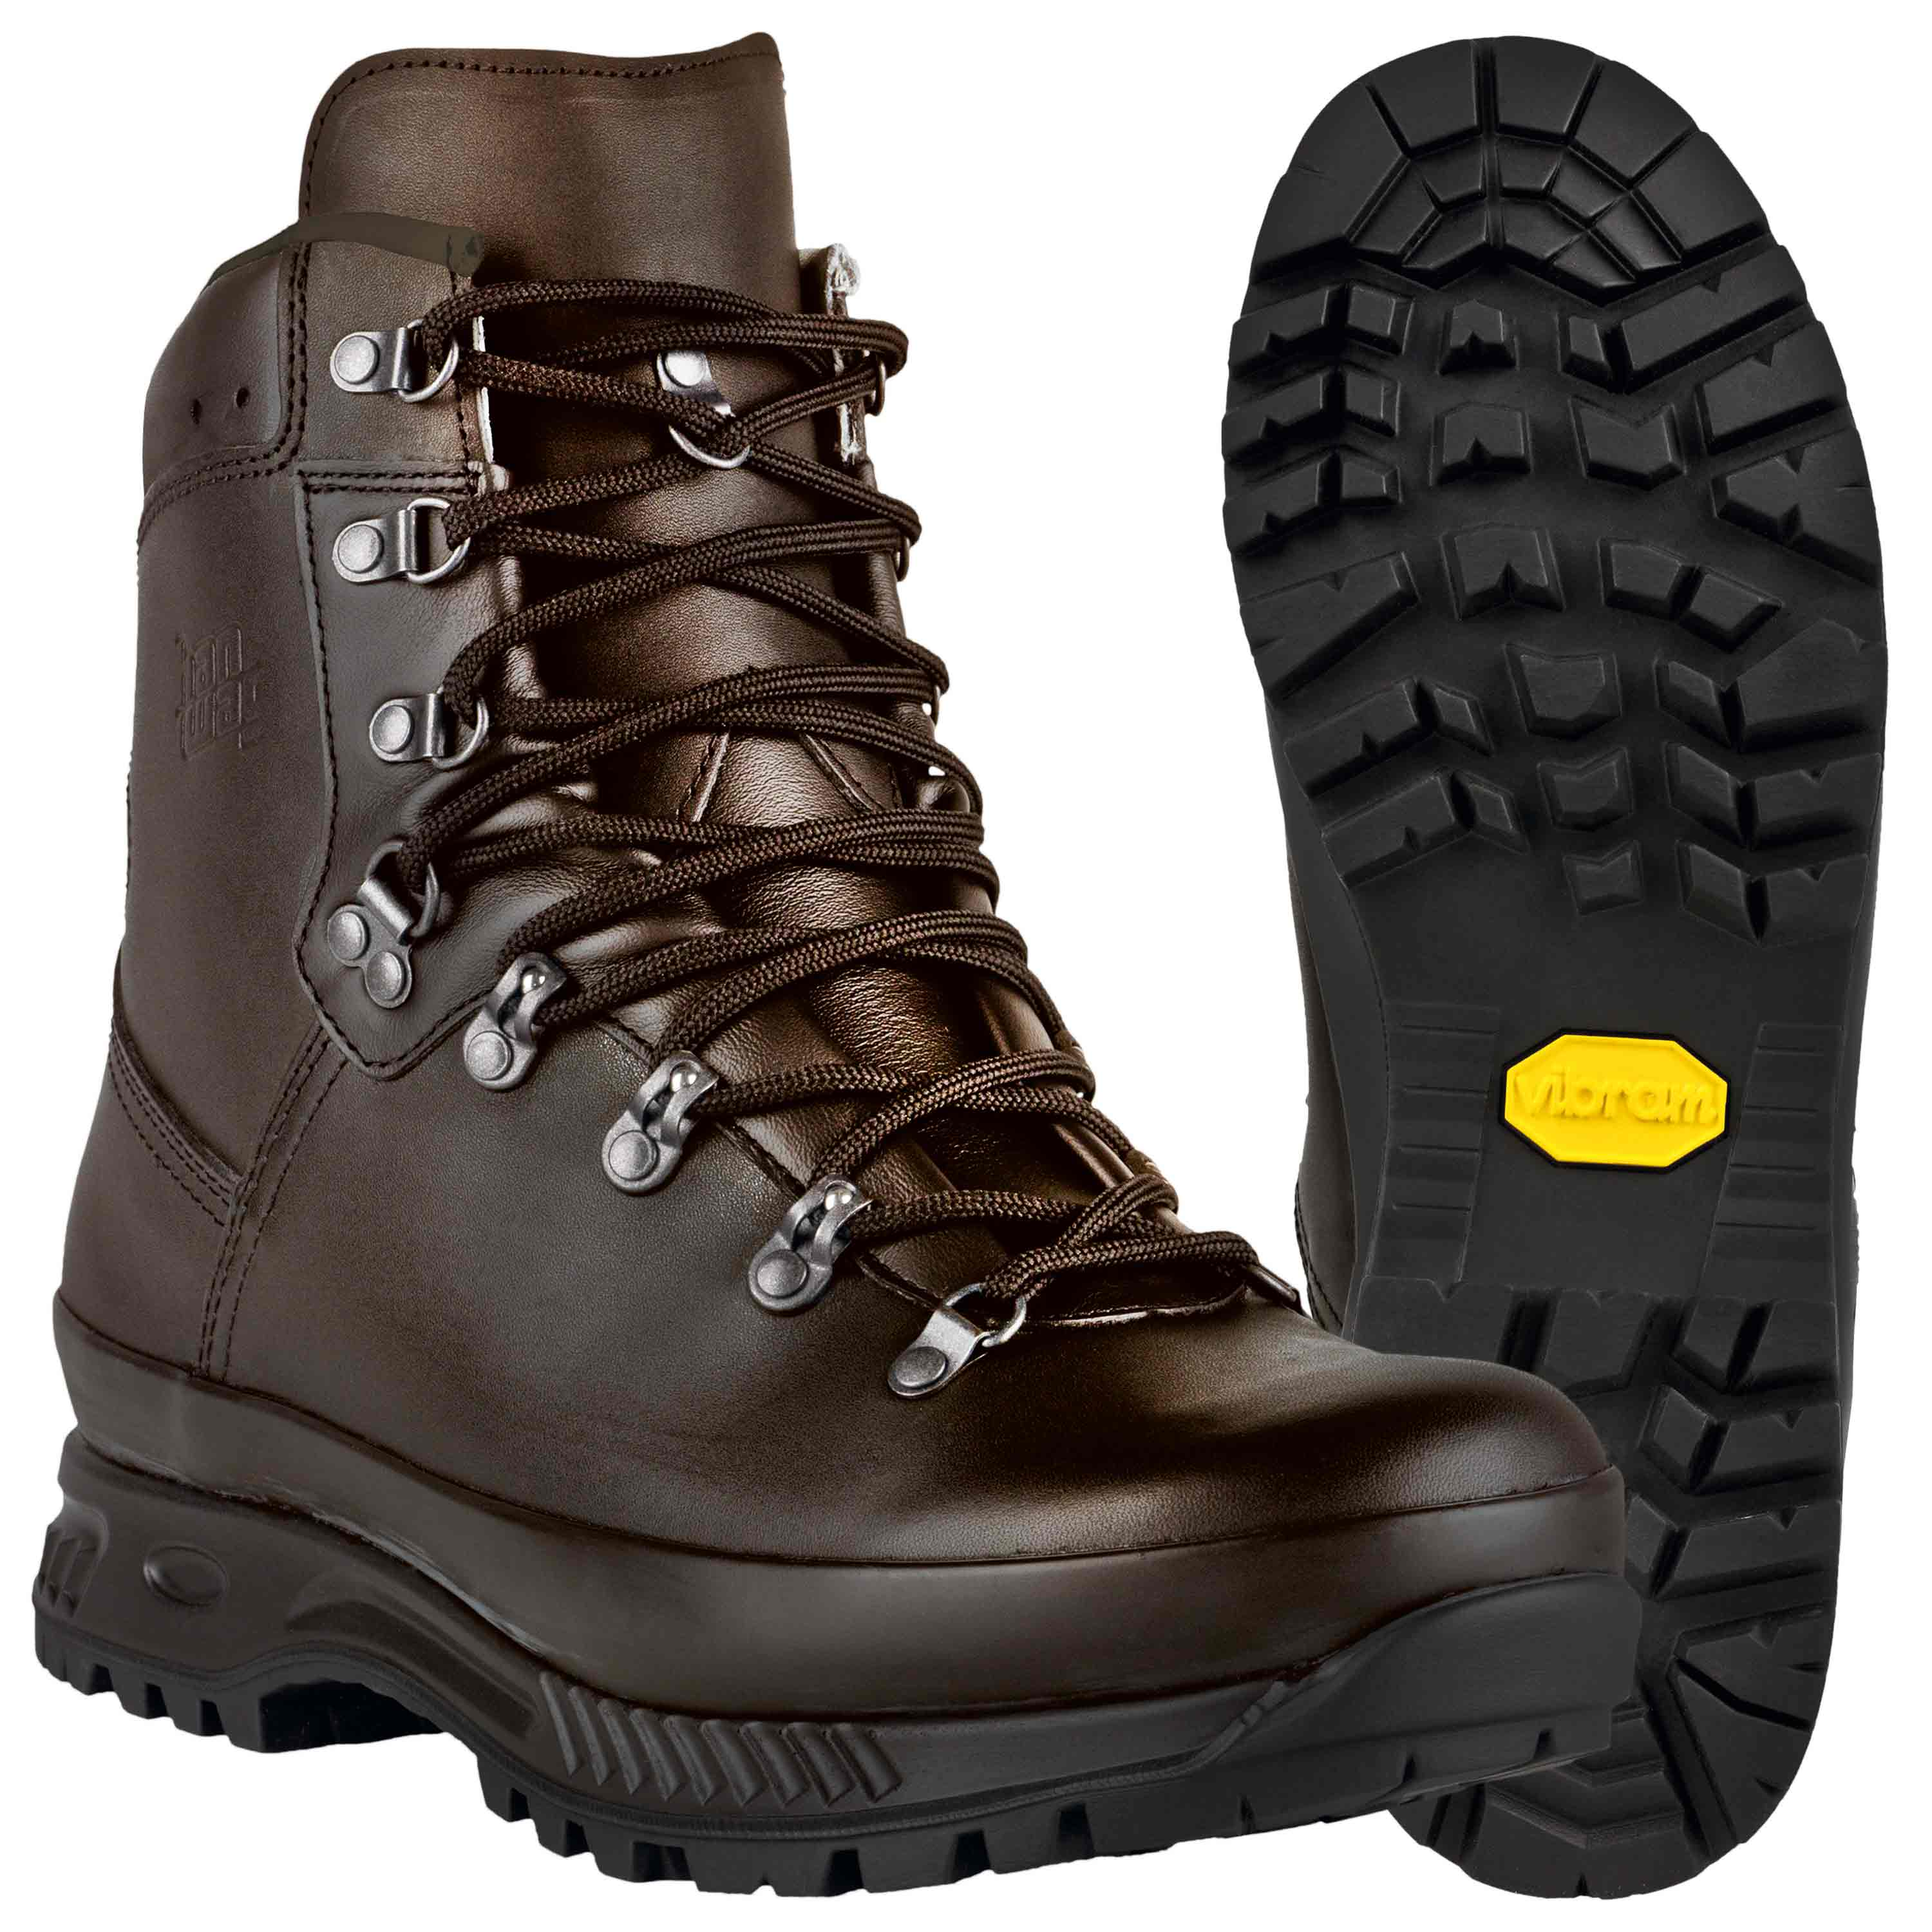 Hanwag Stiefel Special Force GTX hydro brown